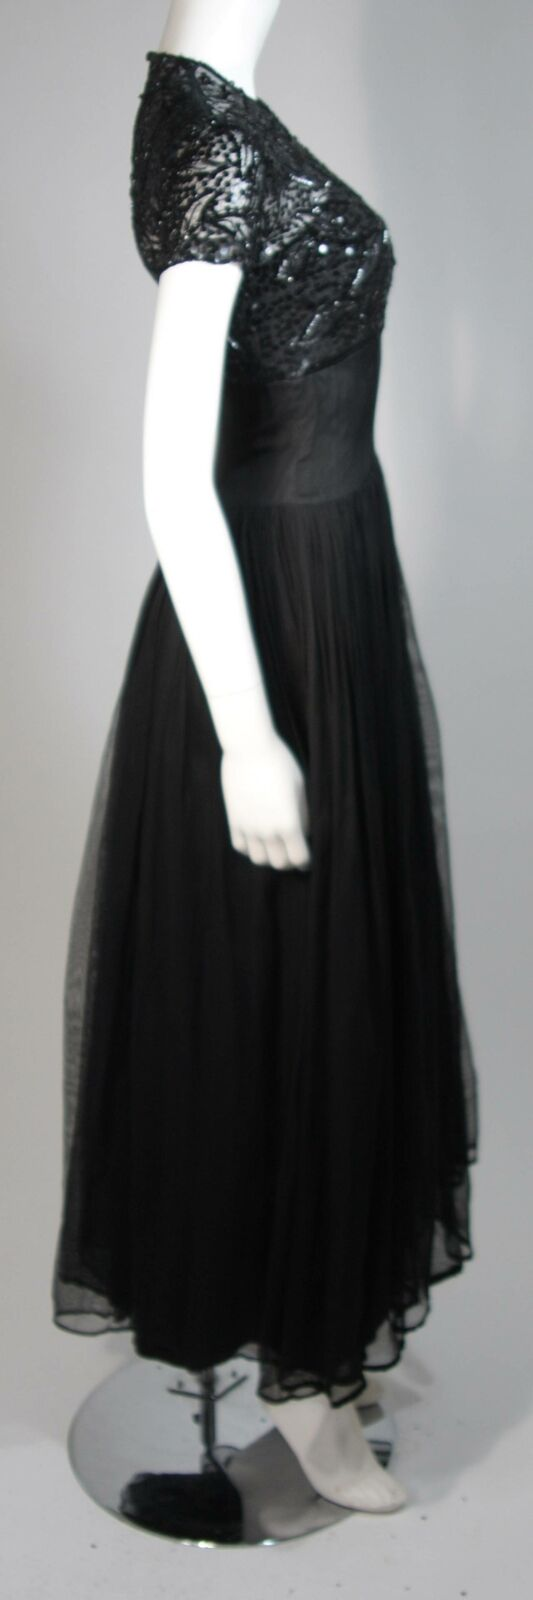 CEIL CHAPMAN Attributed Black Gown Size Small - image 6